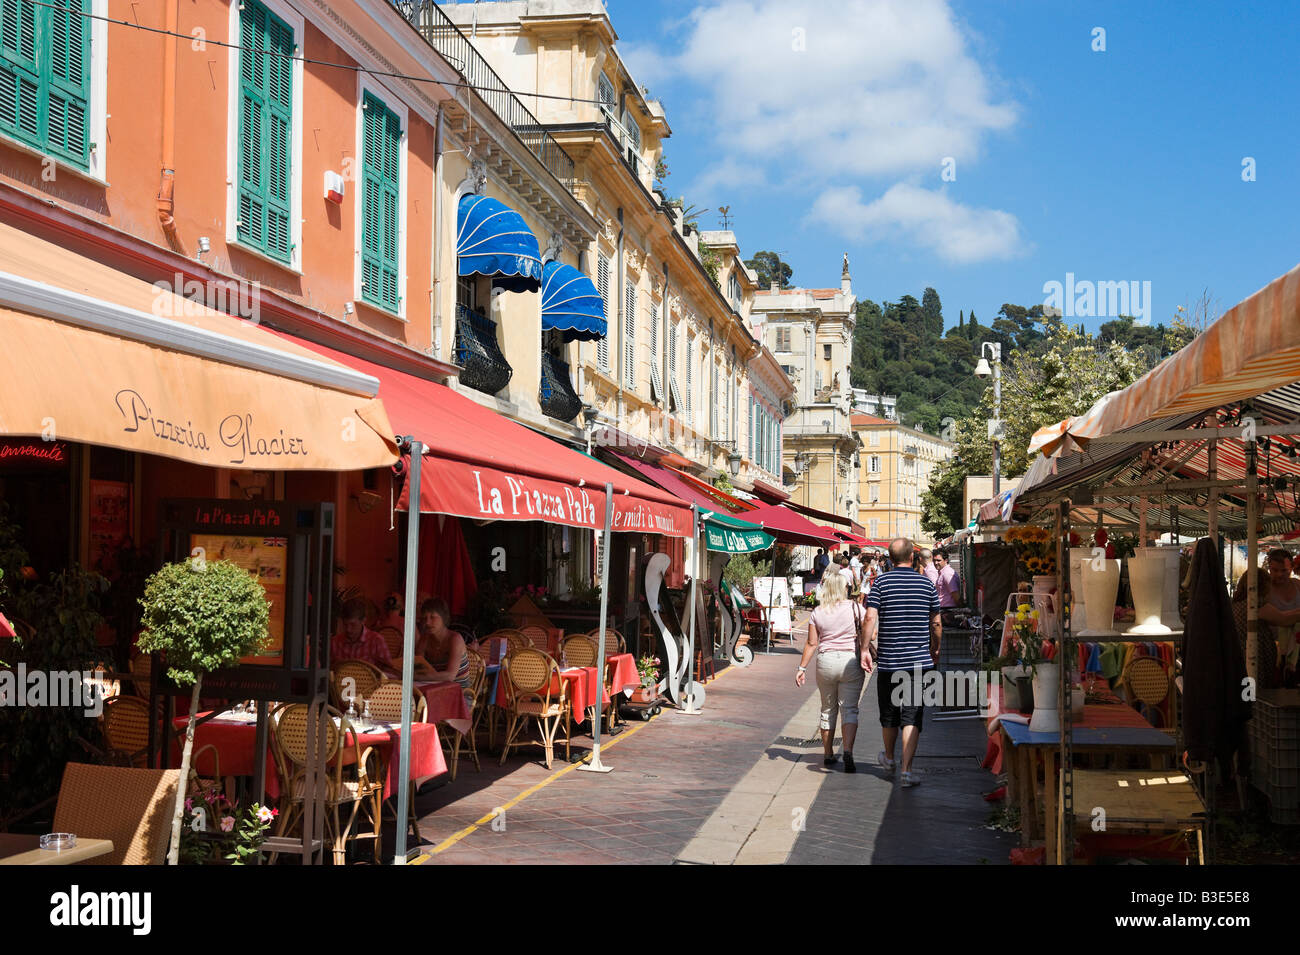 Restaurants and market in the Cours Saleya in the old town (Vieux Nice), Nice, Cote d'Azur, French Riviera, - Stock Image